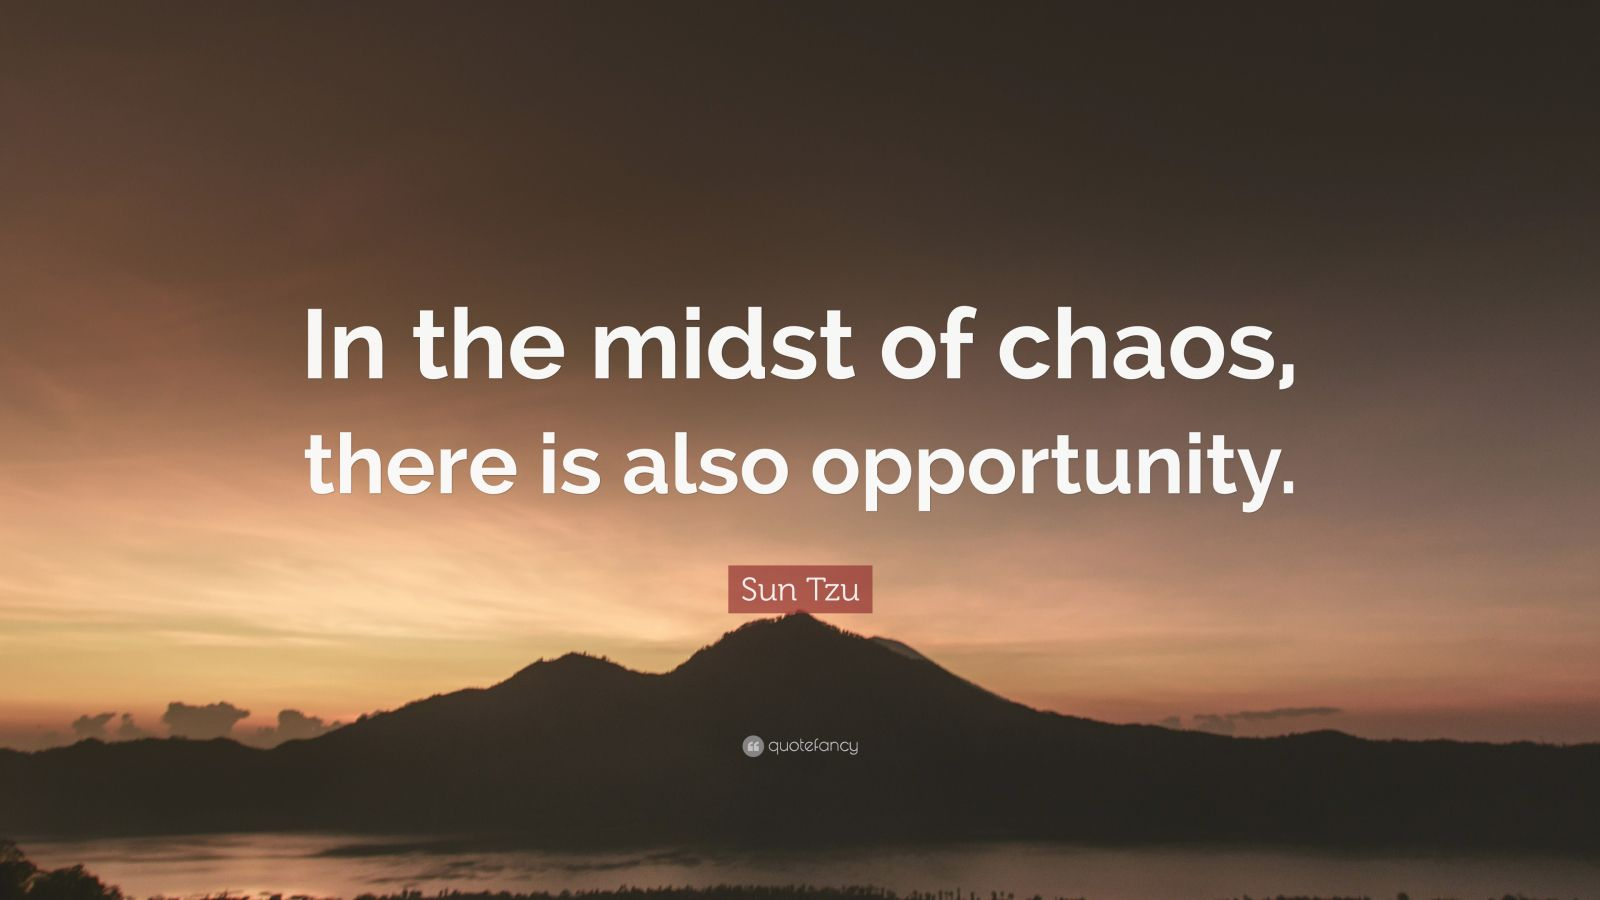 Wallpapers Philosophy Quotes Sun Tzu Quote In The Midst Of Chaos There Is Also